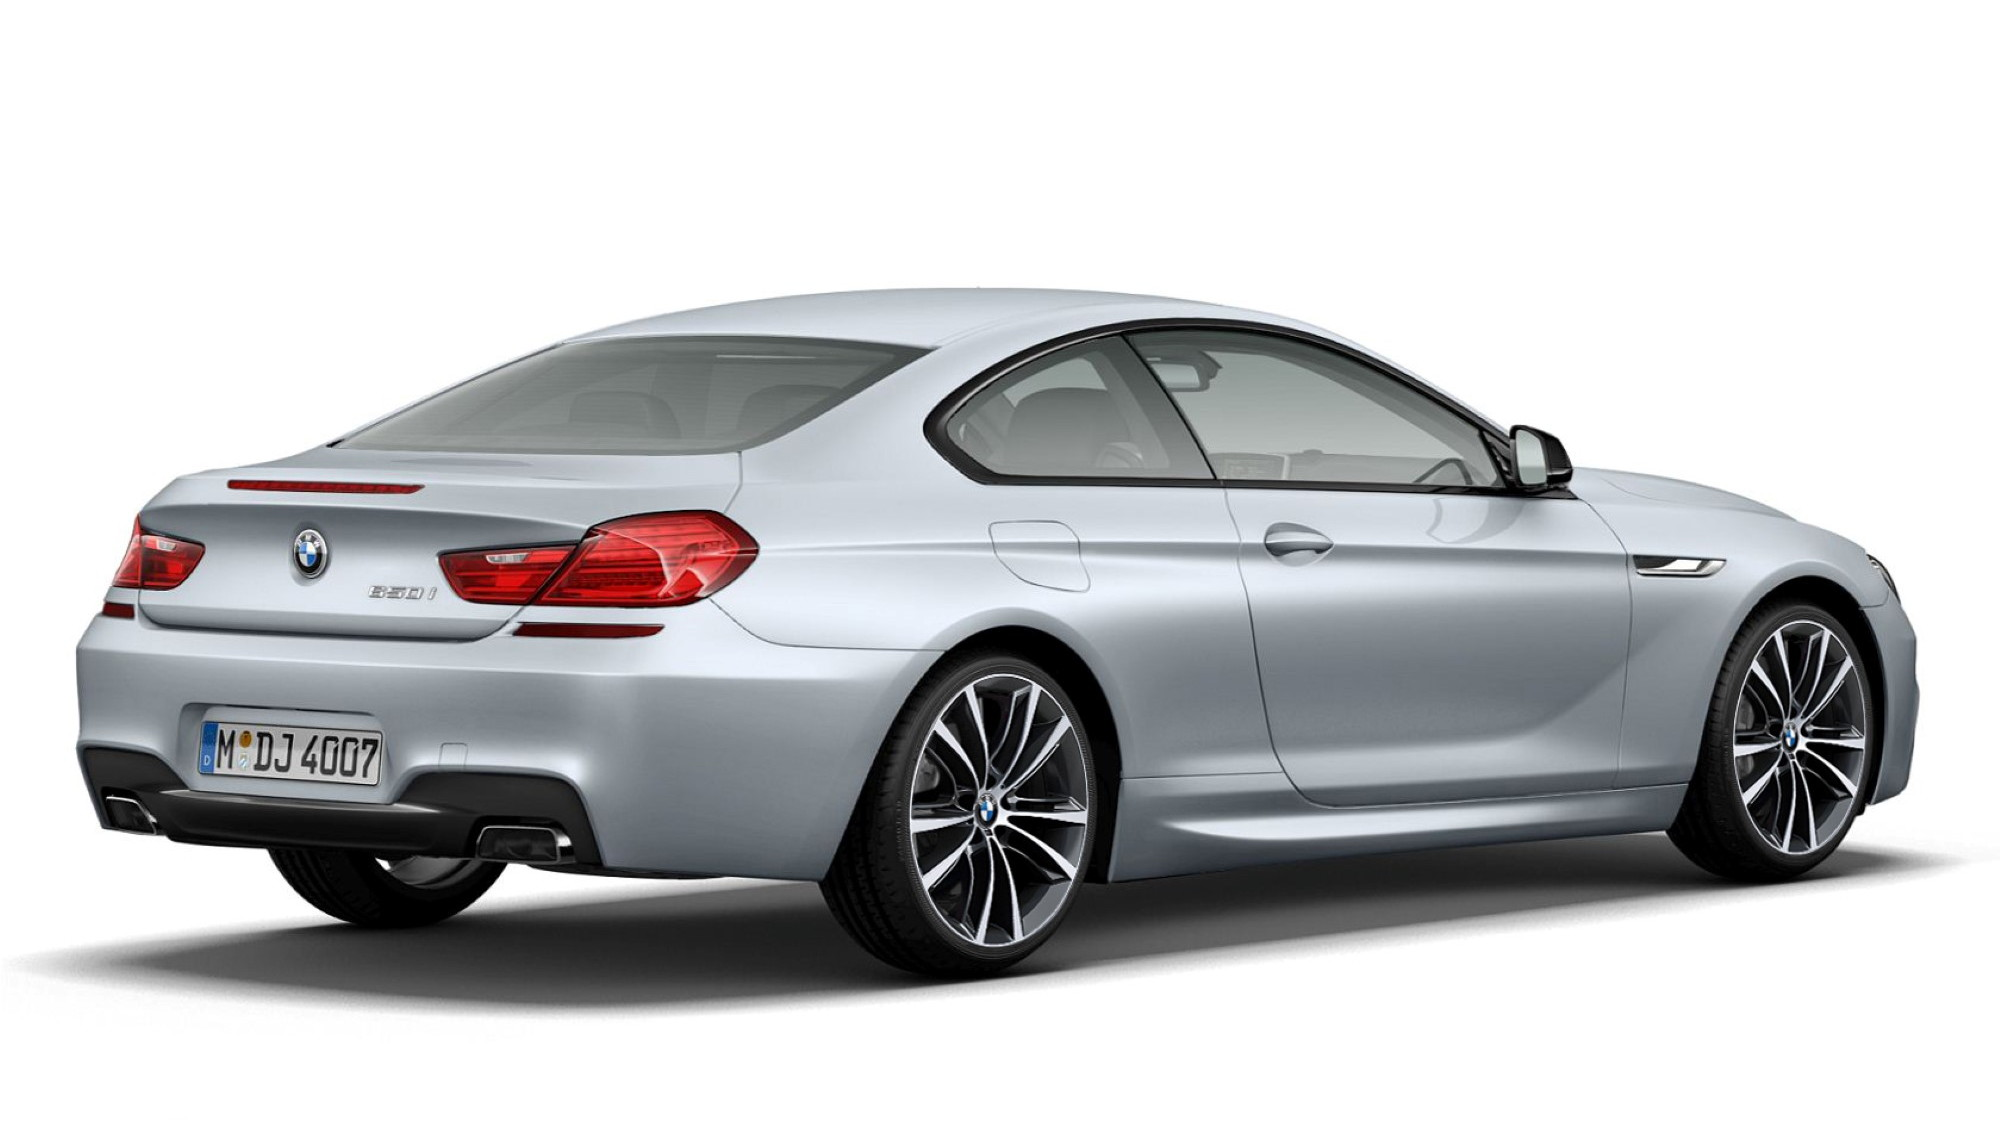 2013 BMW 6-Series Coupe Frozen Silver Edition